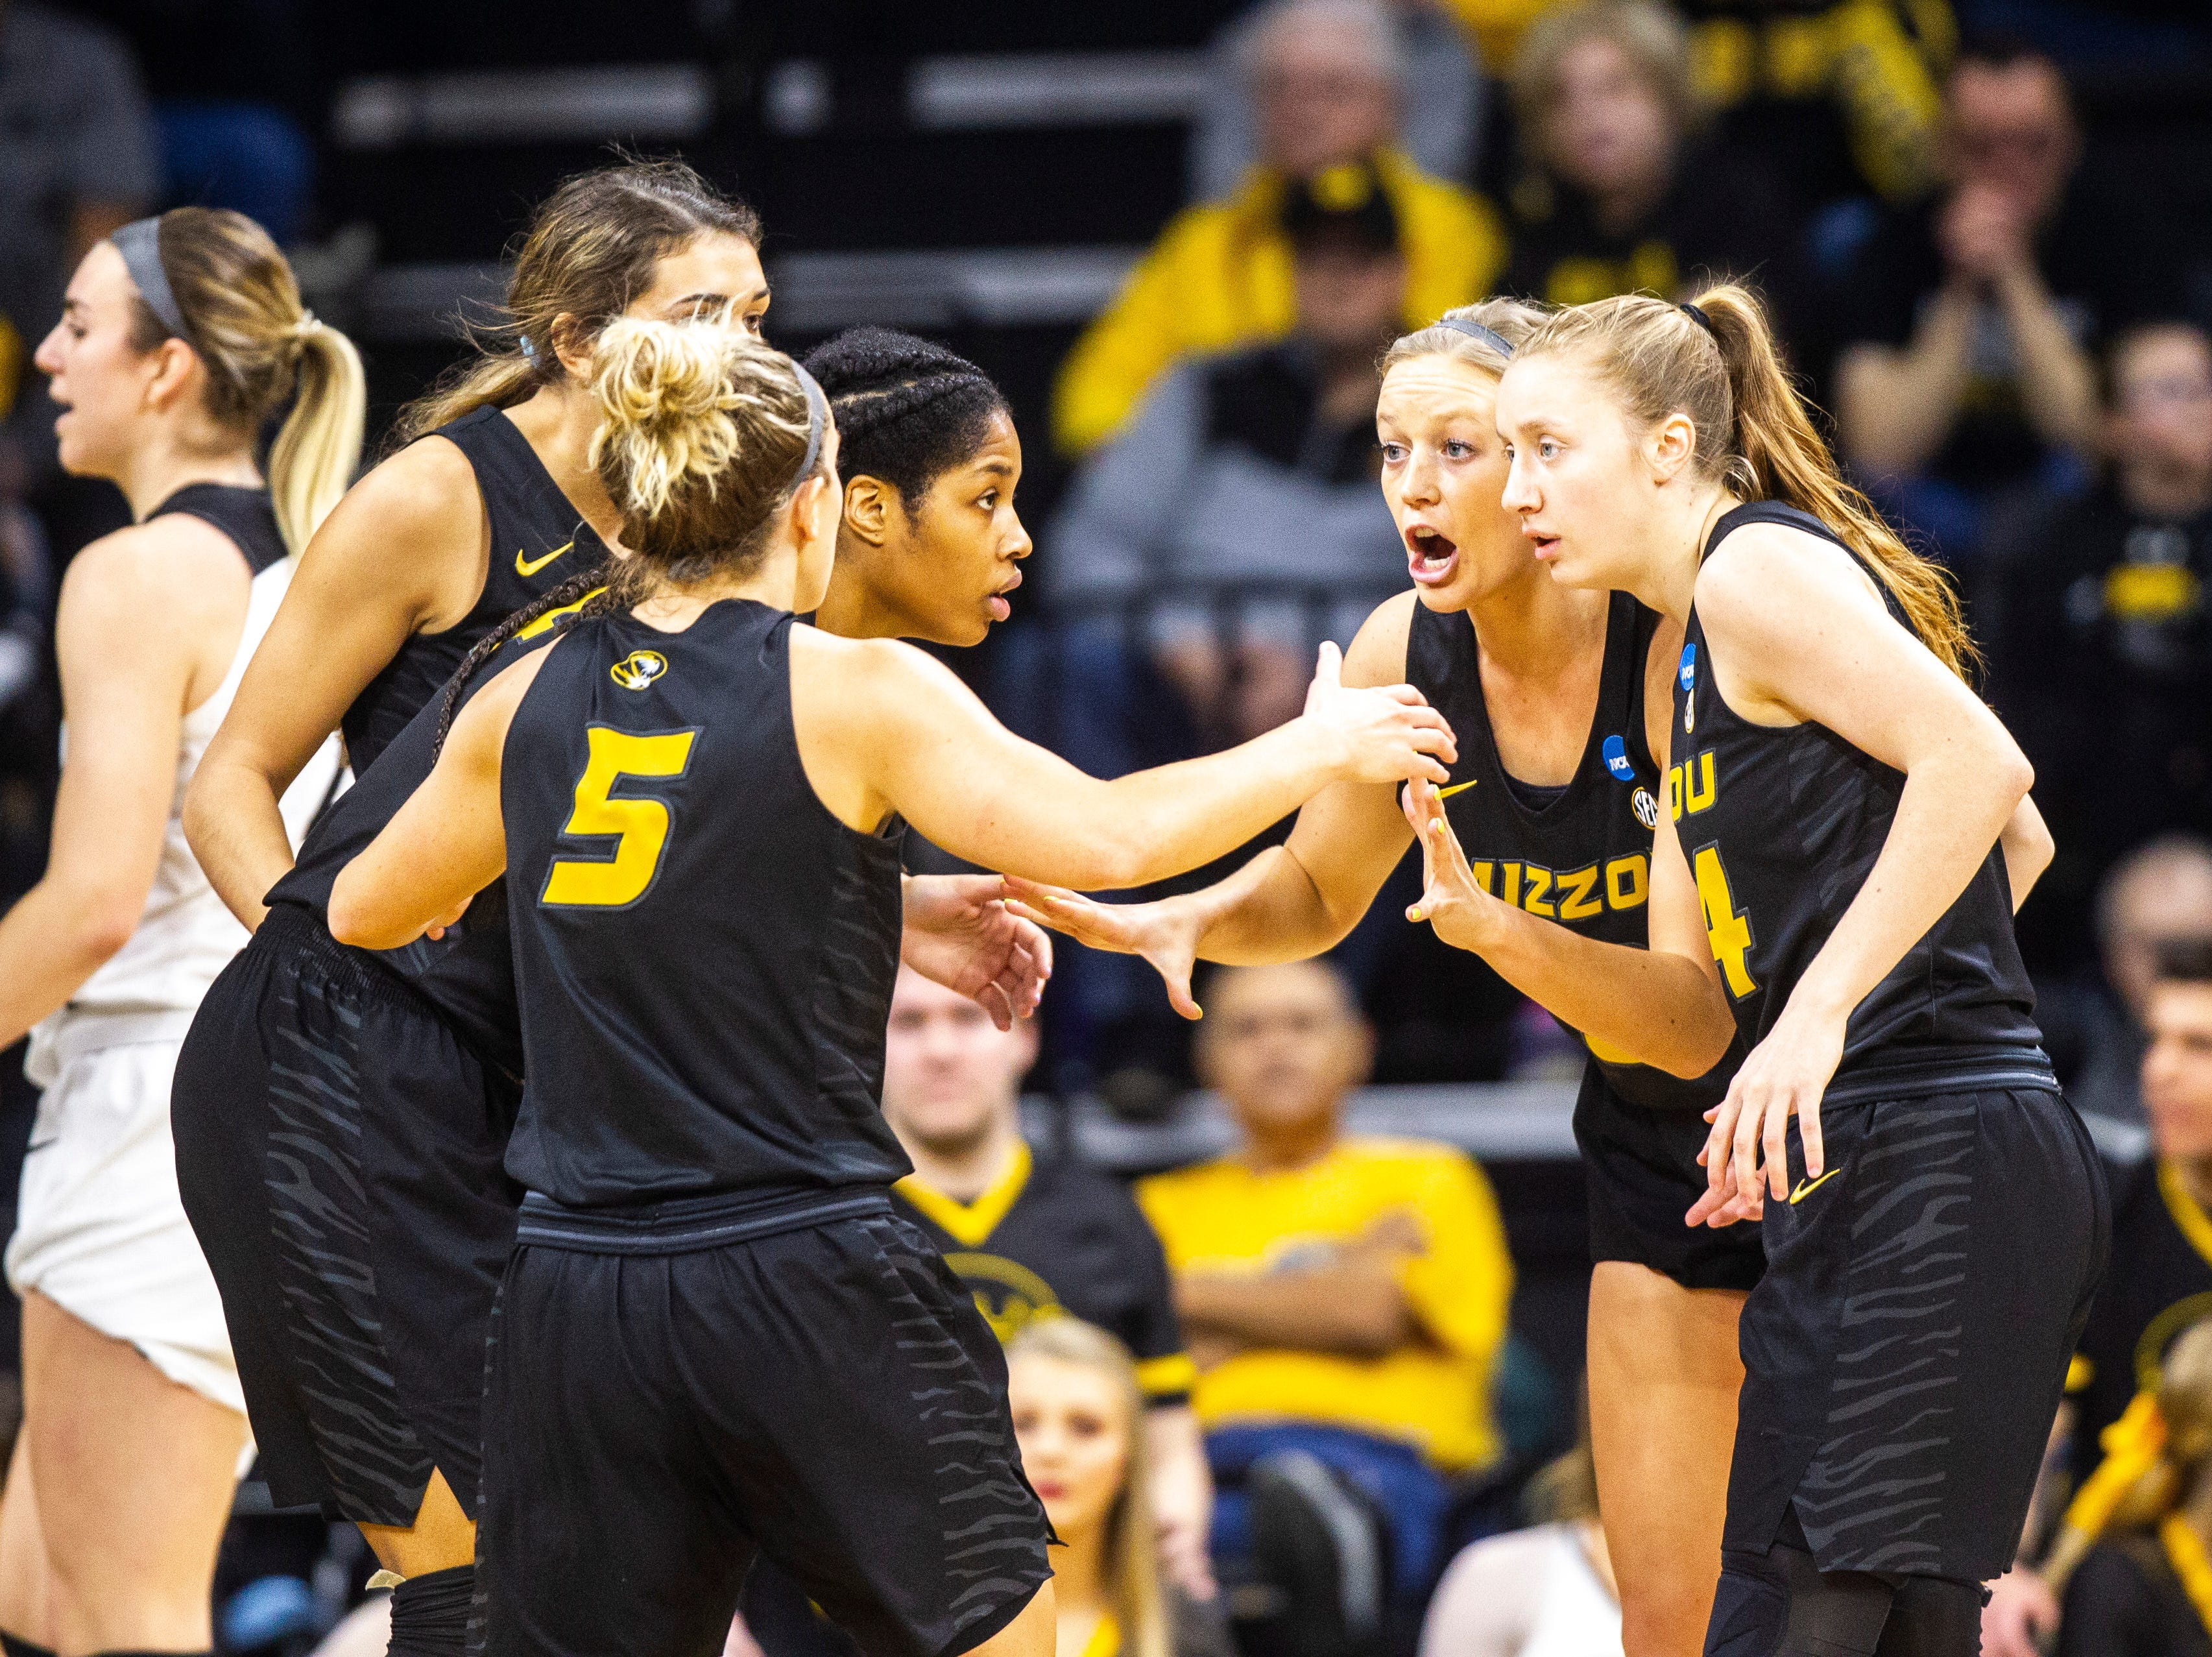 Missouri guard Sophie Cunningham, second from right, huddles with teammates during a NCAA women's basketball tournament second-round game, Sunday, March 24, 2019, at Carver-Hawkeye Arena in Iowa City, Iowa.